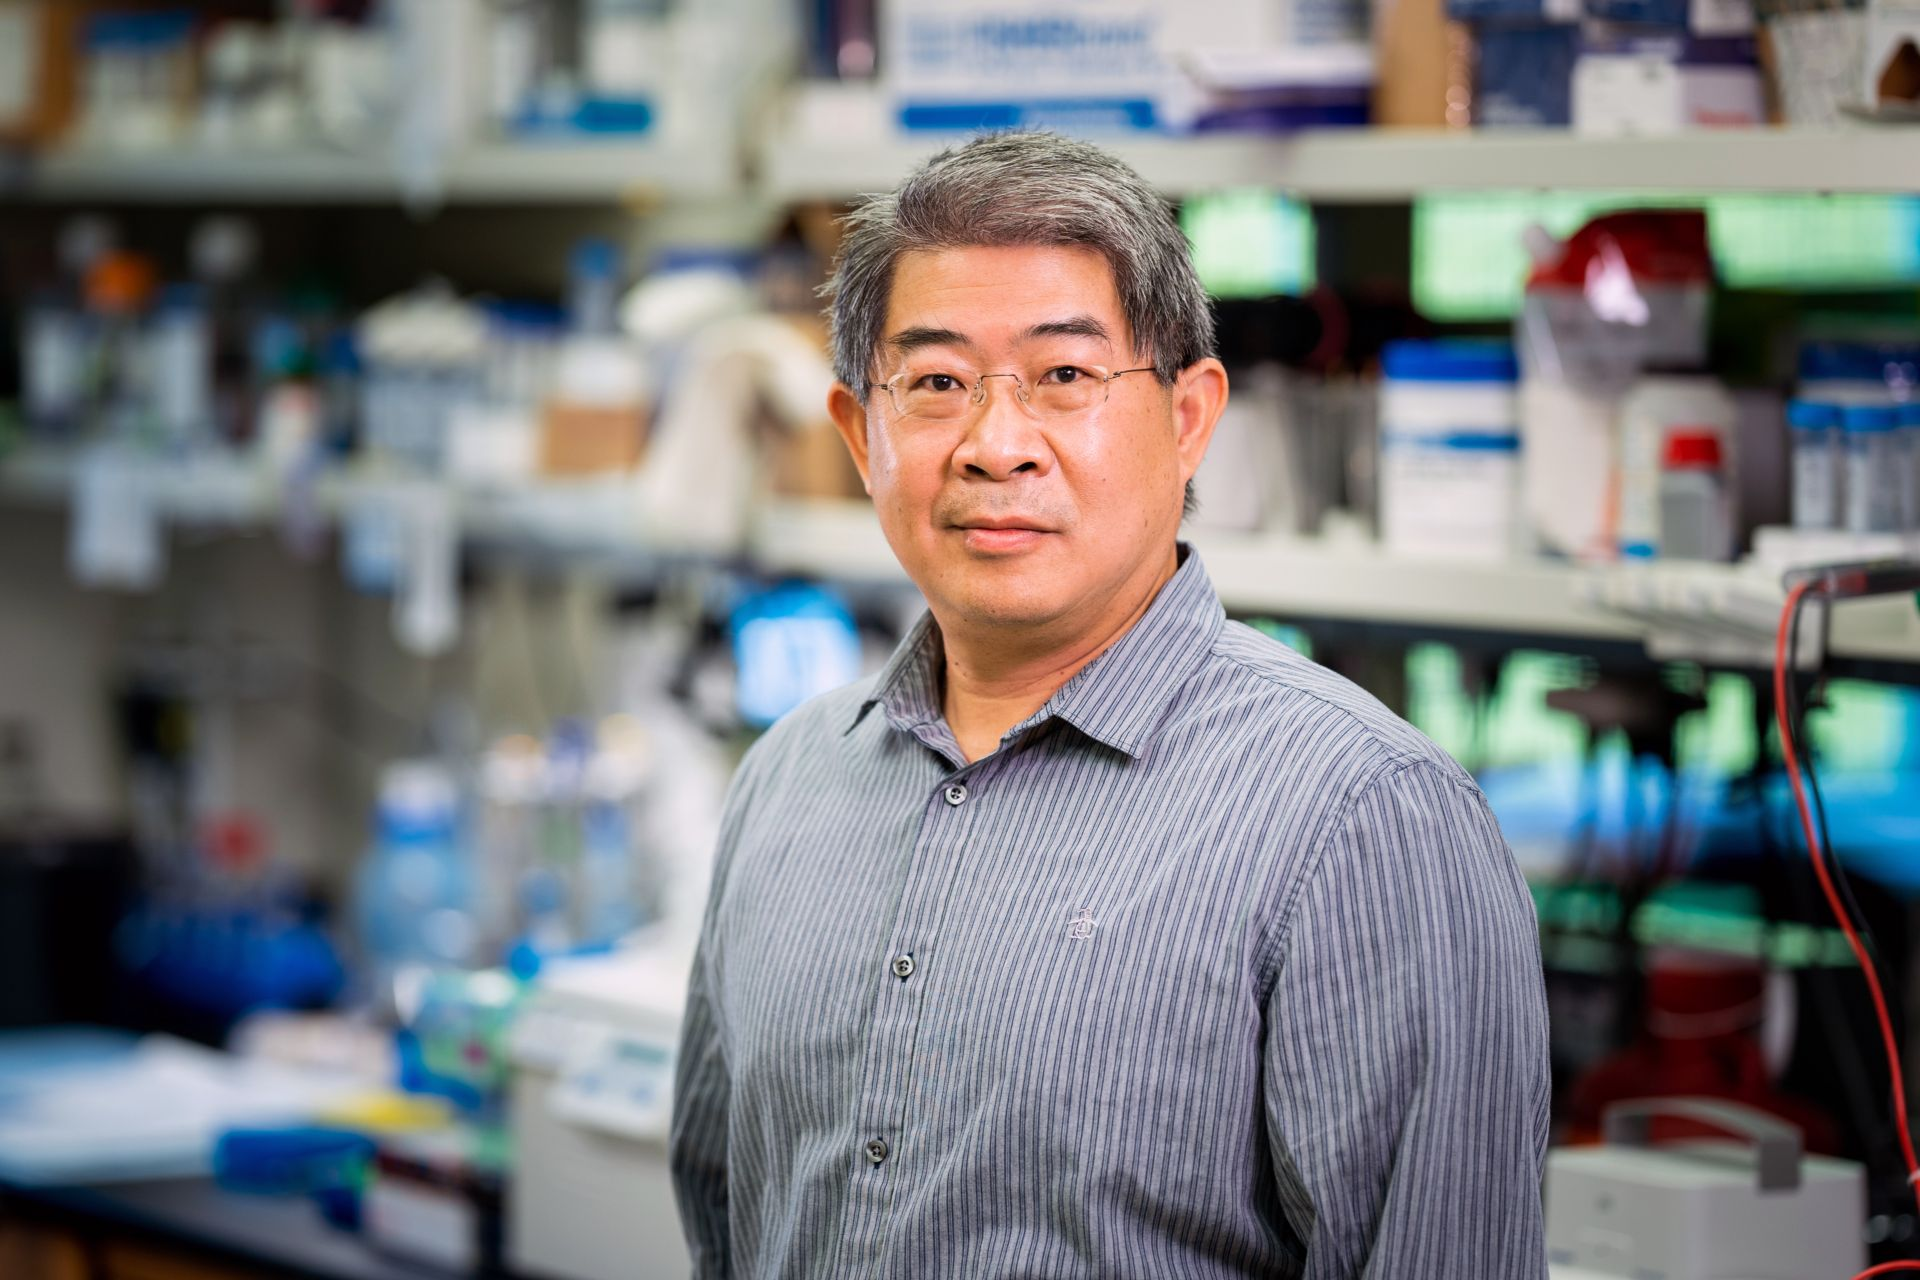 Jhy-Rong Chao, PhD